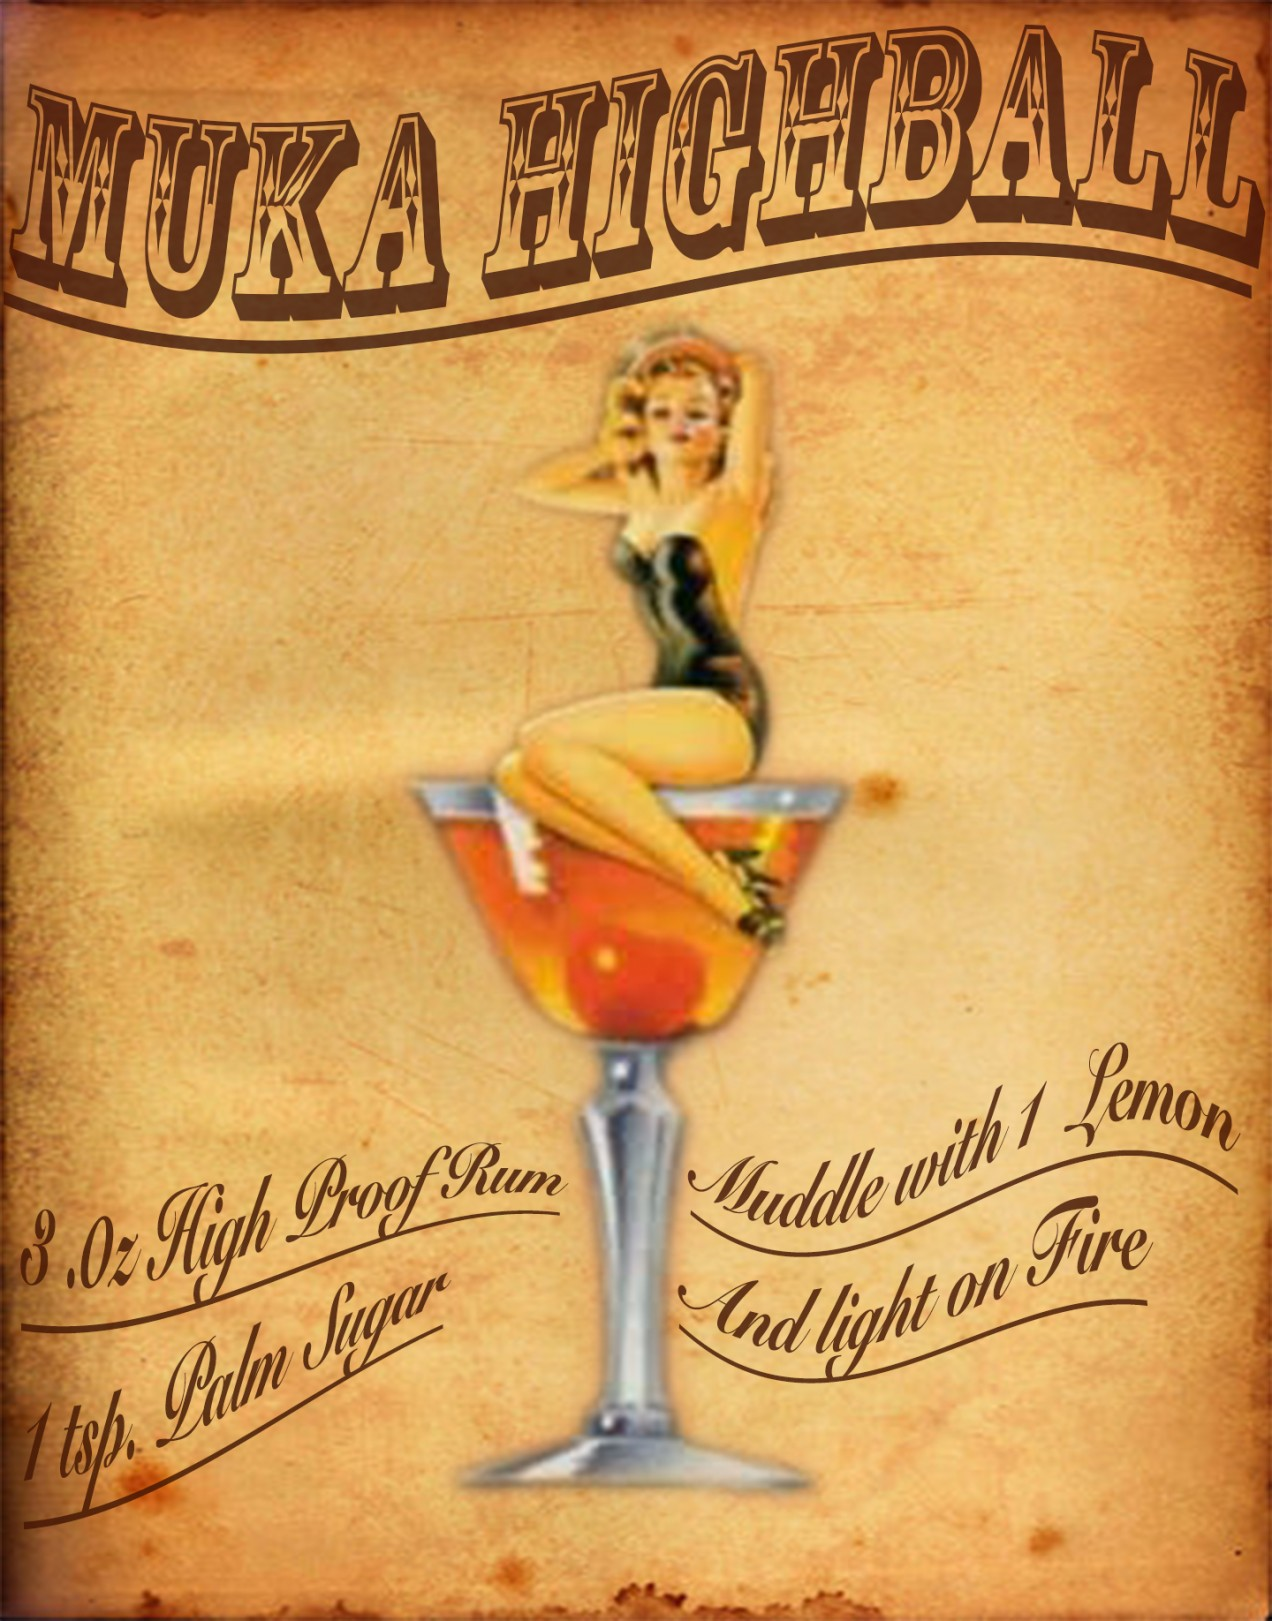 muka-highball